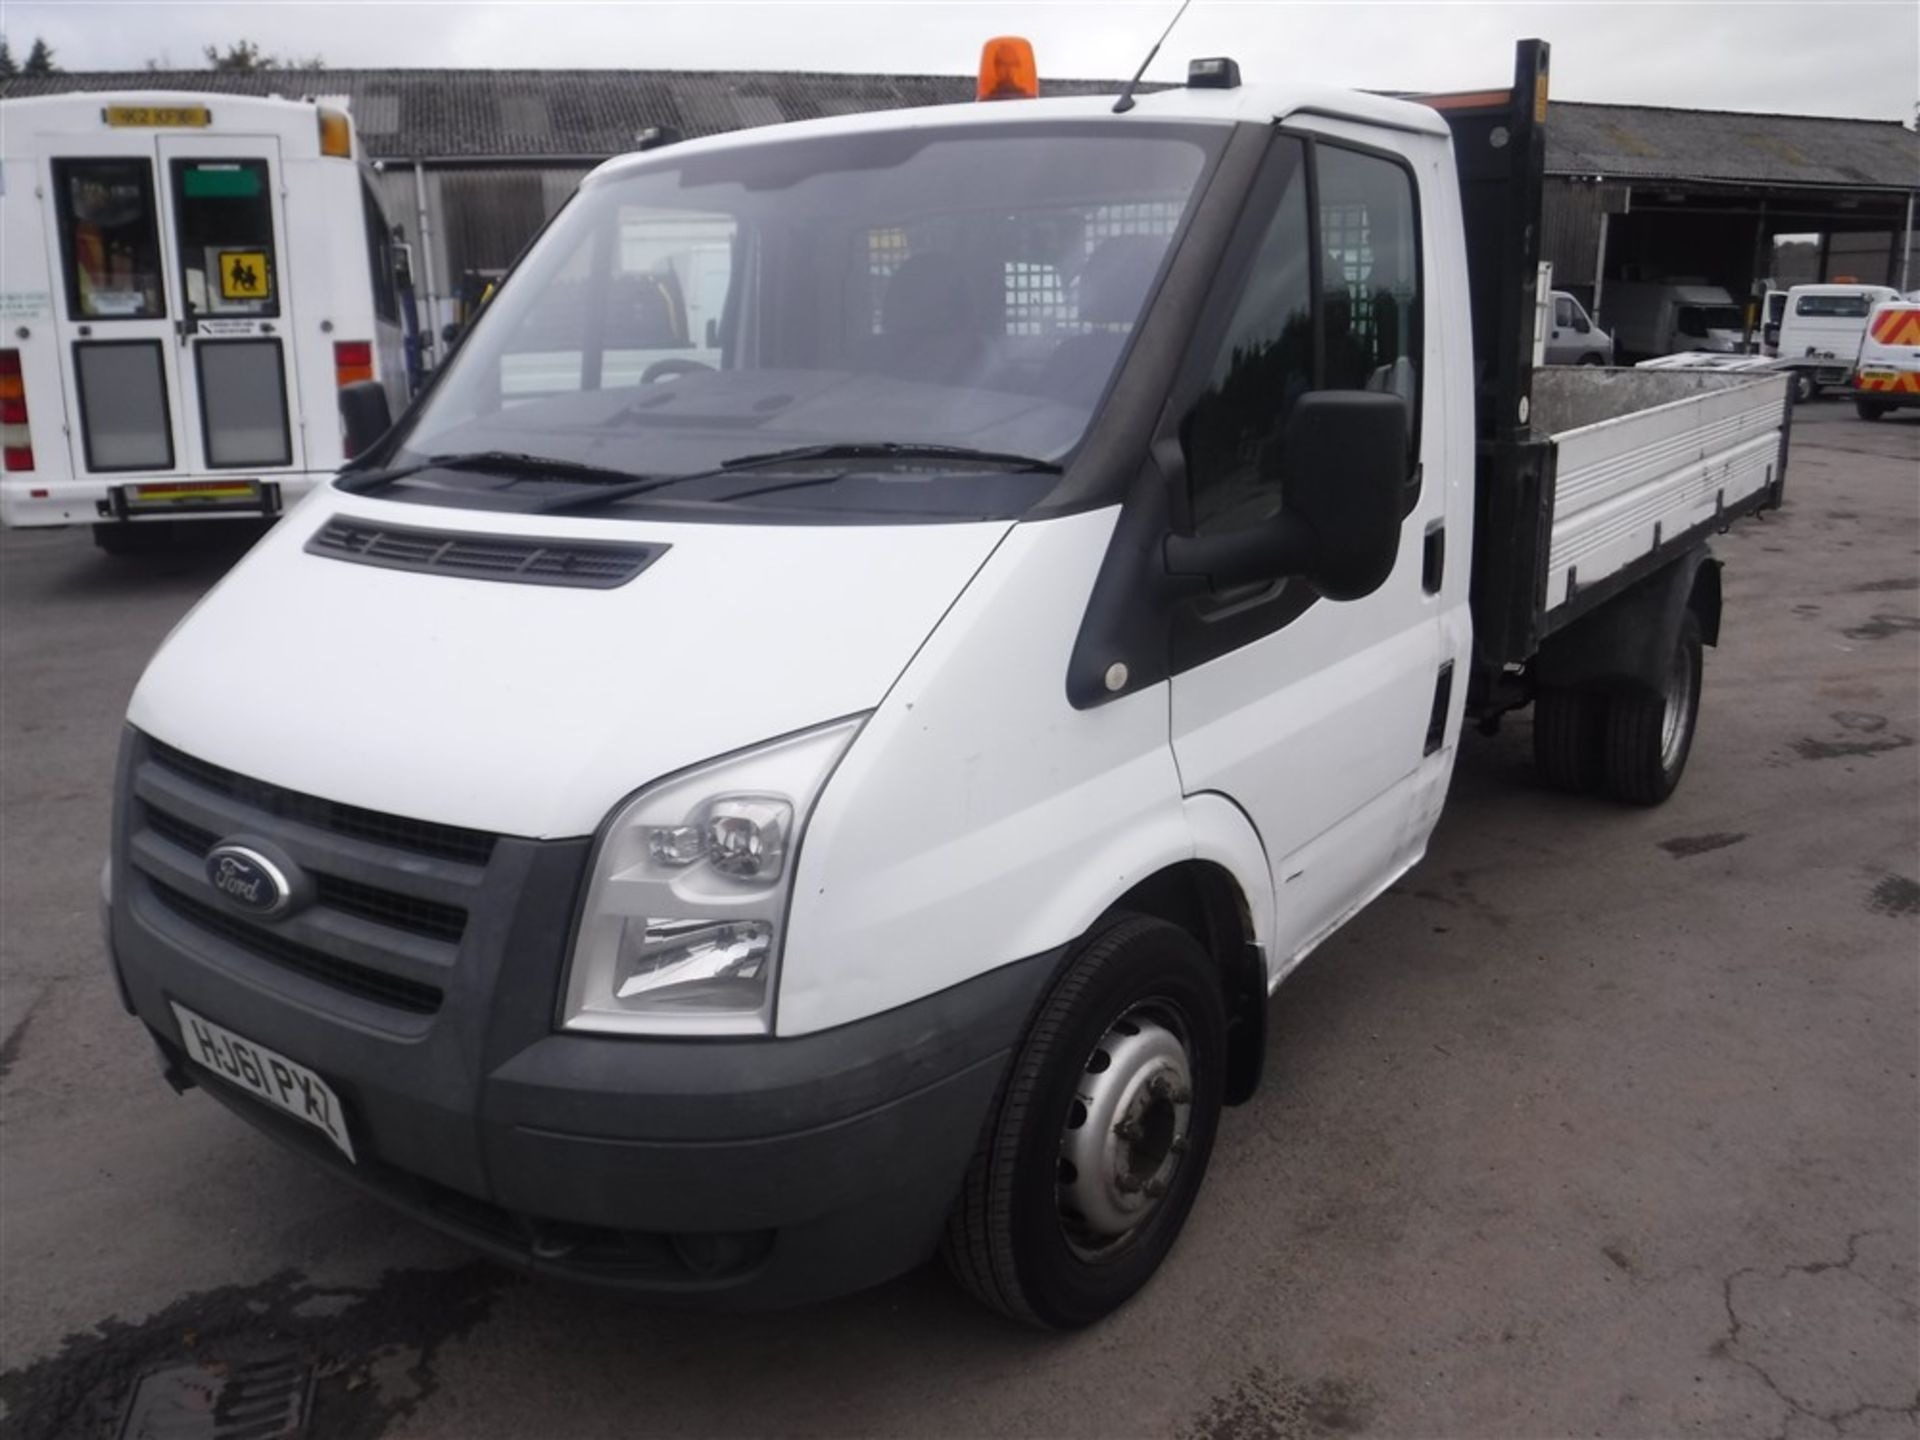 Lot 55 - 61 reg FORD TRANSIT 115 T350 RWD TIPPER, 1ST REG 09/11, 166081M WARRANTED, V5 HERE, 1 FORMER